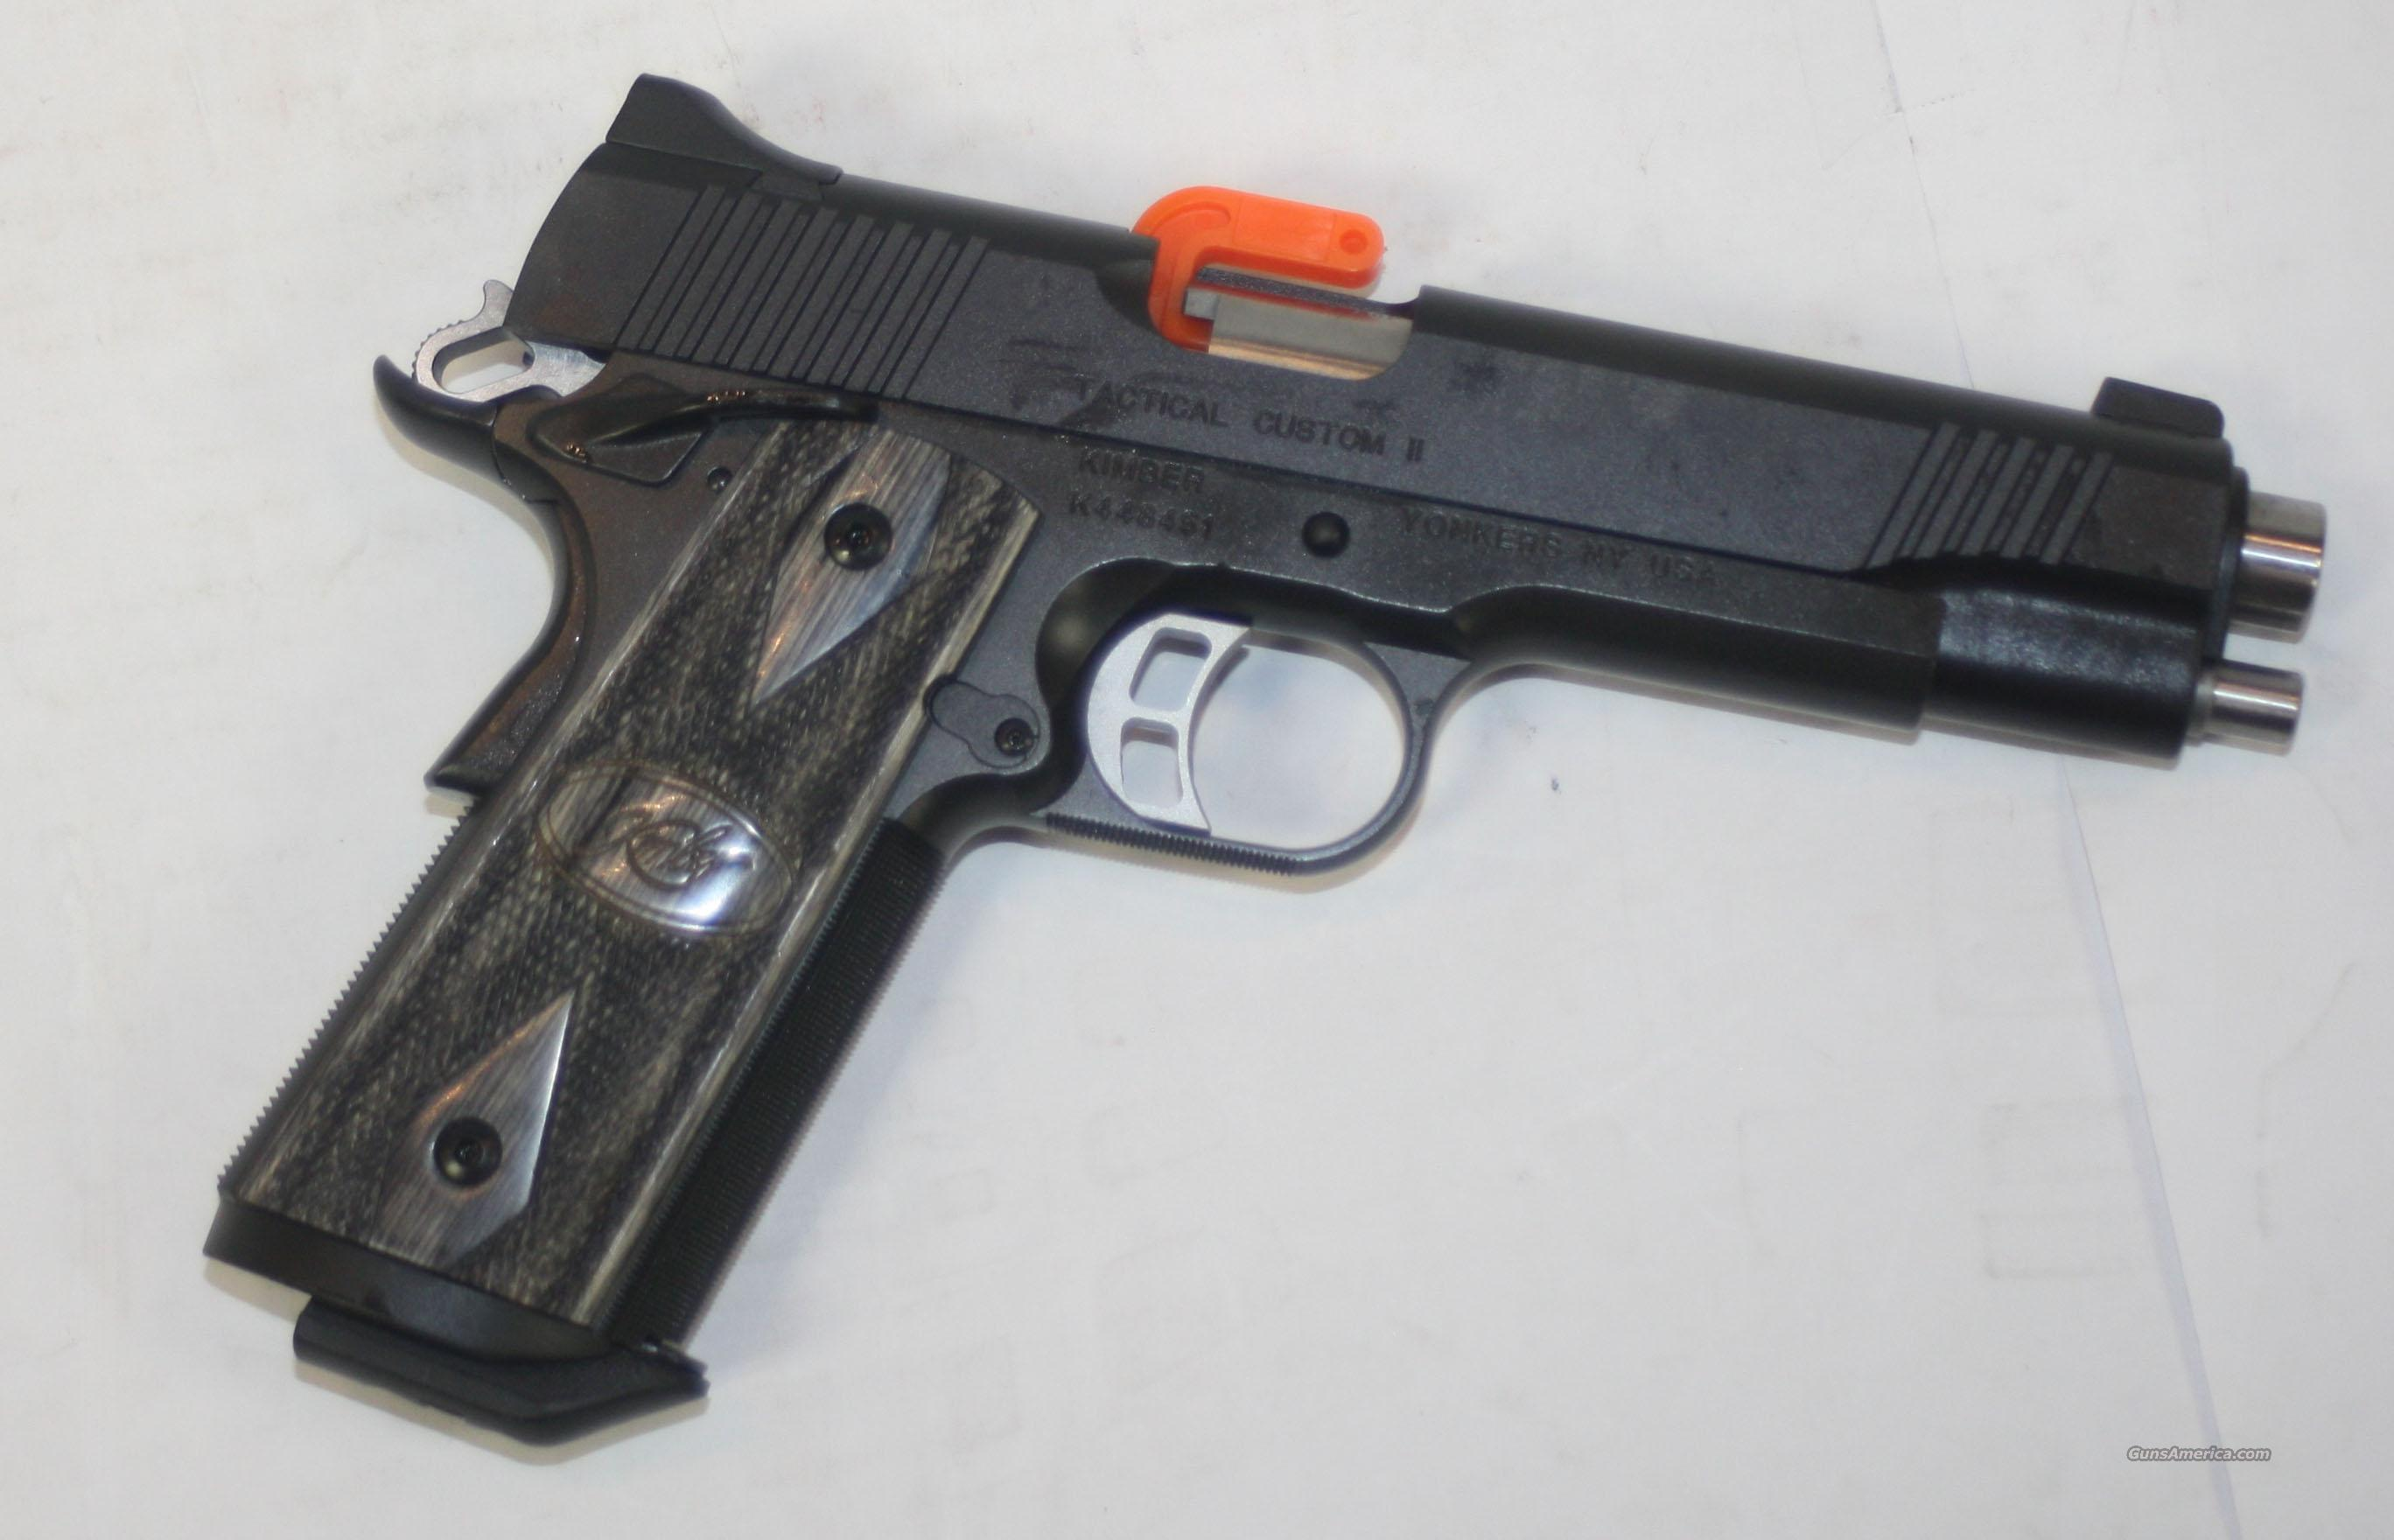 KIMBER TACTICAL CUSTOM II 45 ACP NEW IN HARD CASE  Guns > Pistols > Kimber of America Pistols